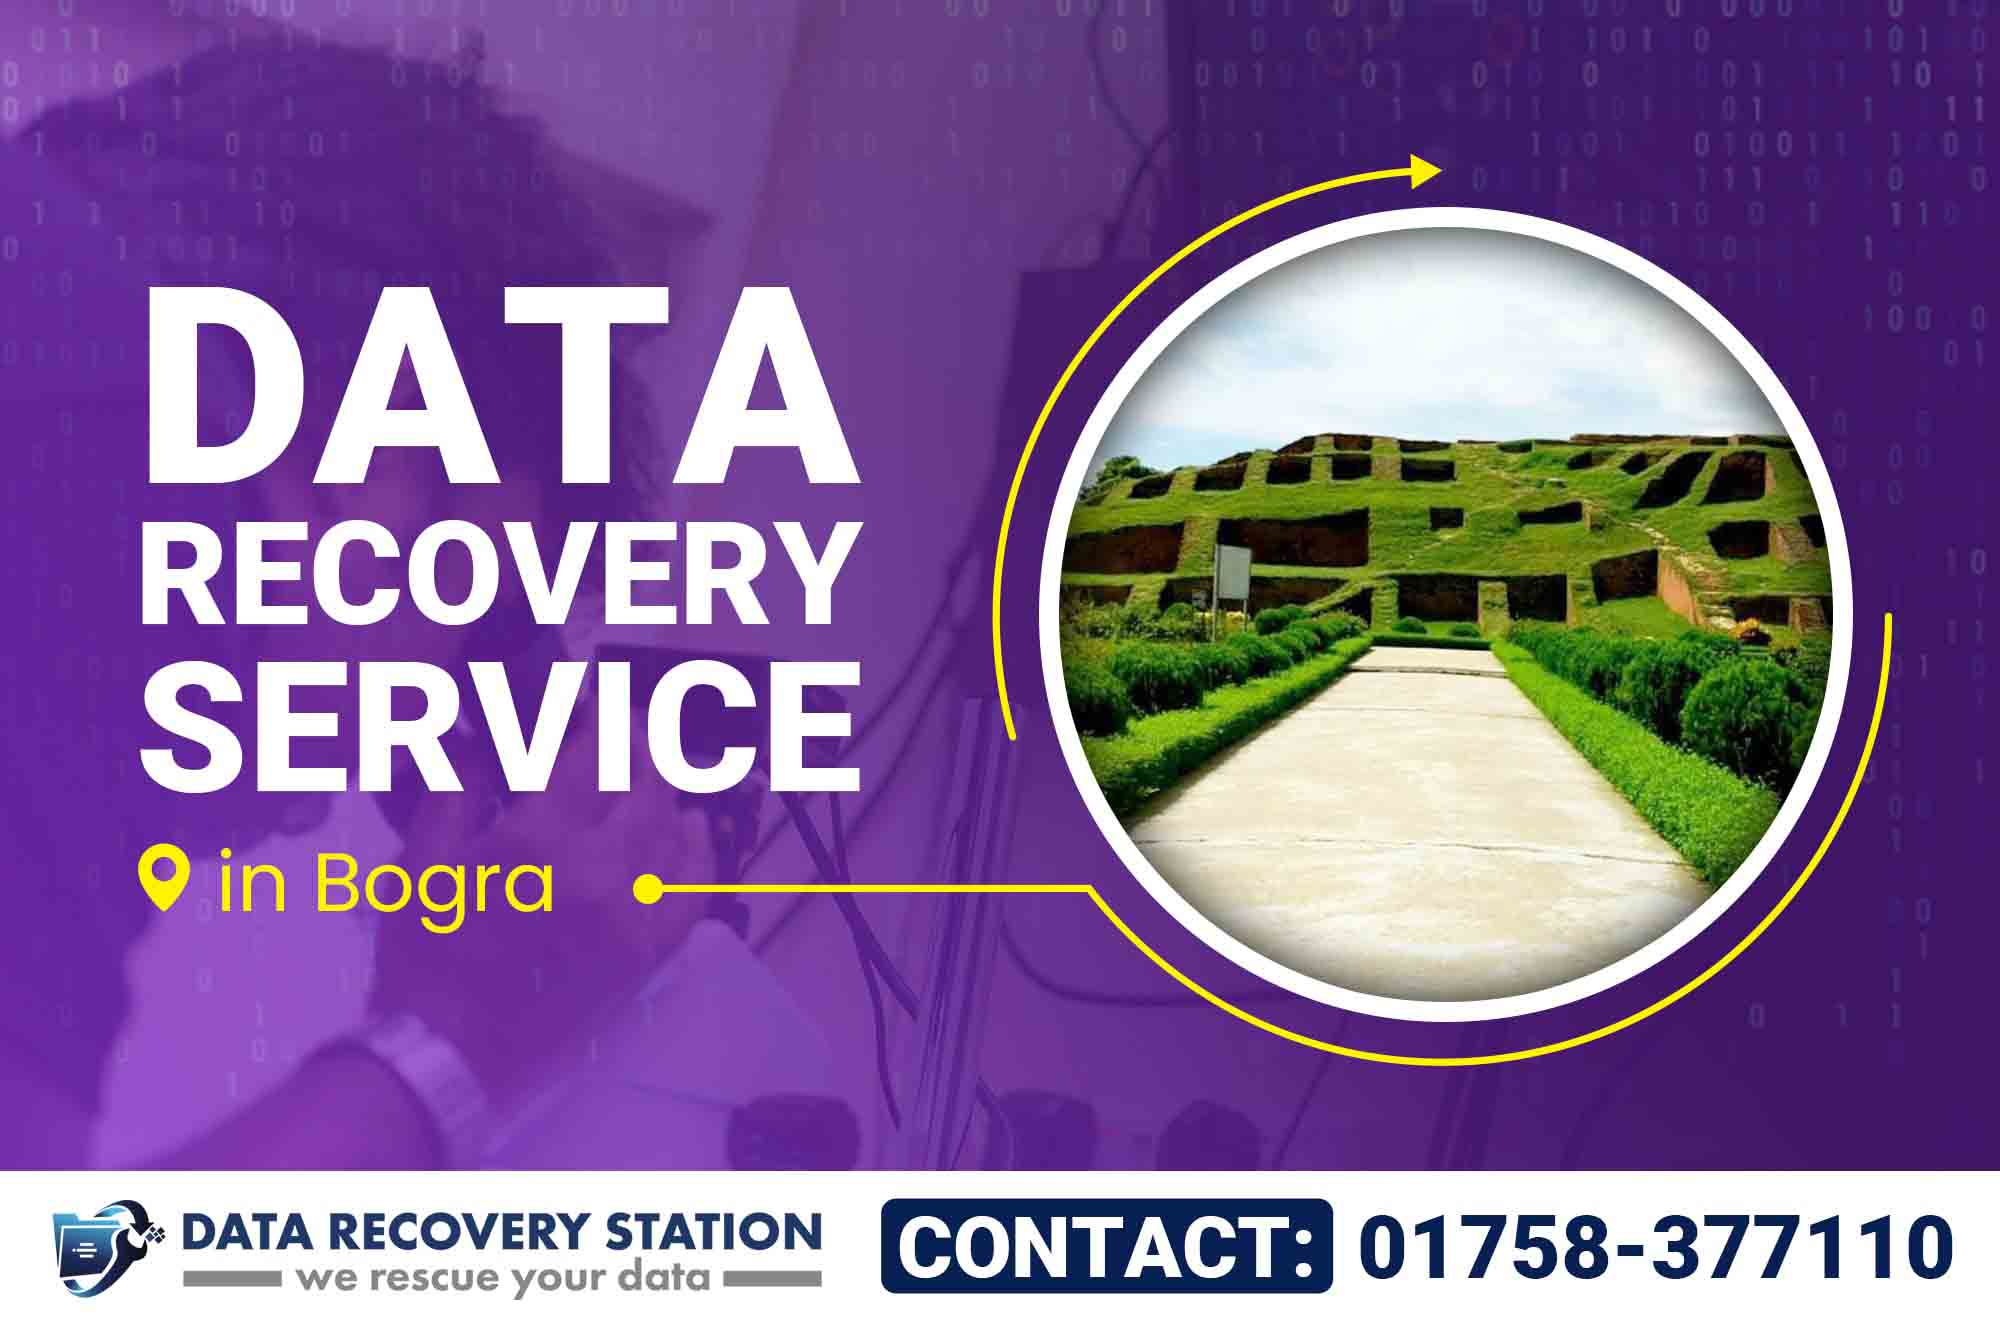 Data Recovery Service in Bogra